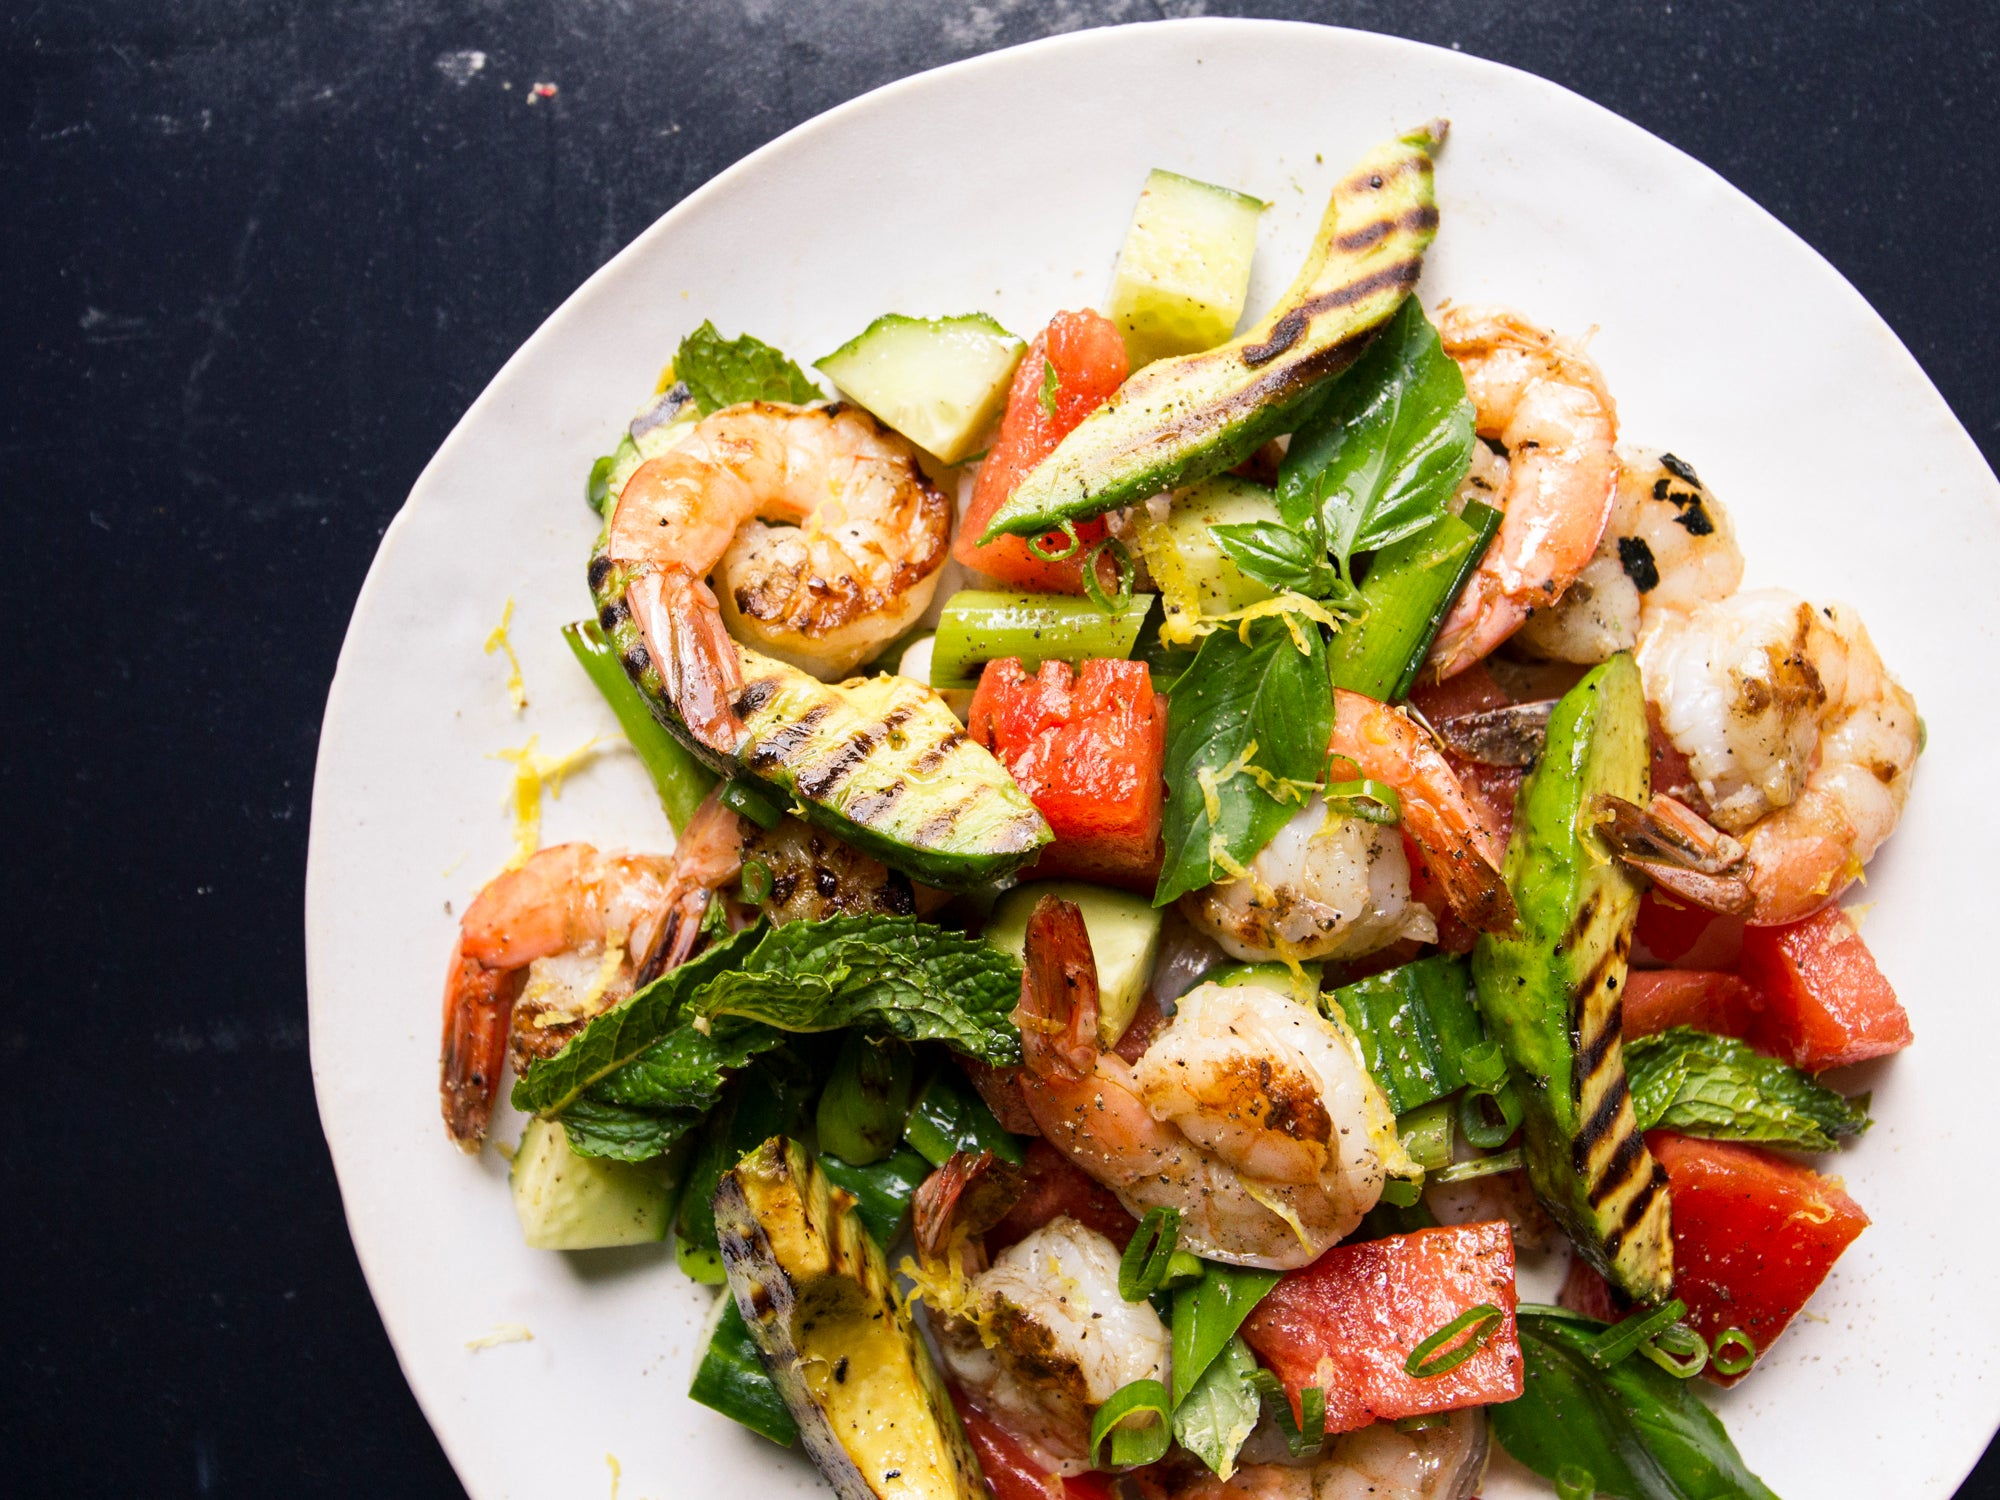 Grilled Watermelon, Avocado, and Shrimp Salad